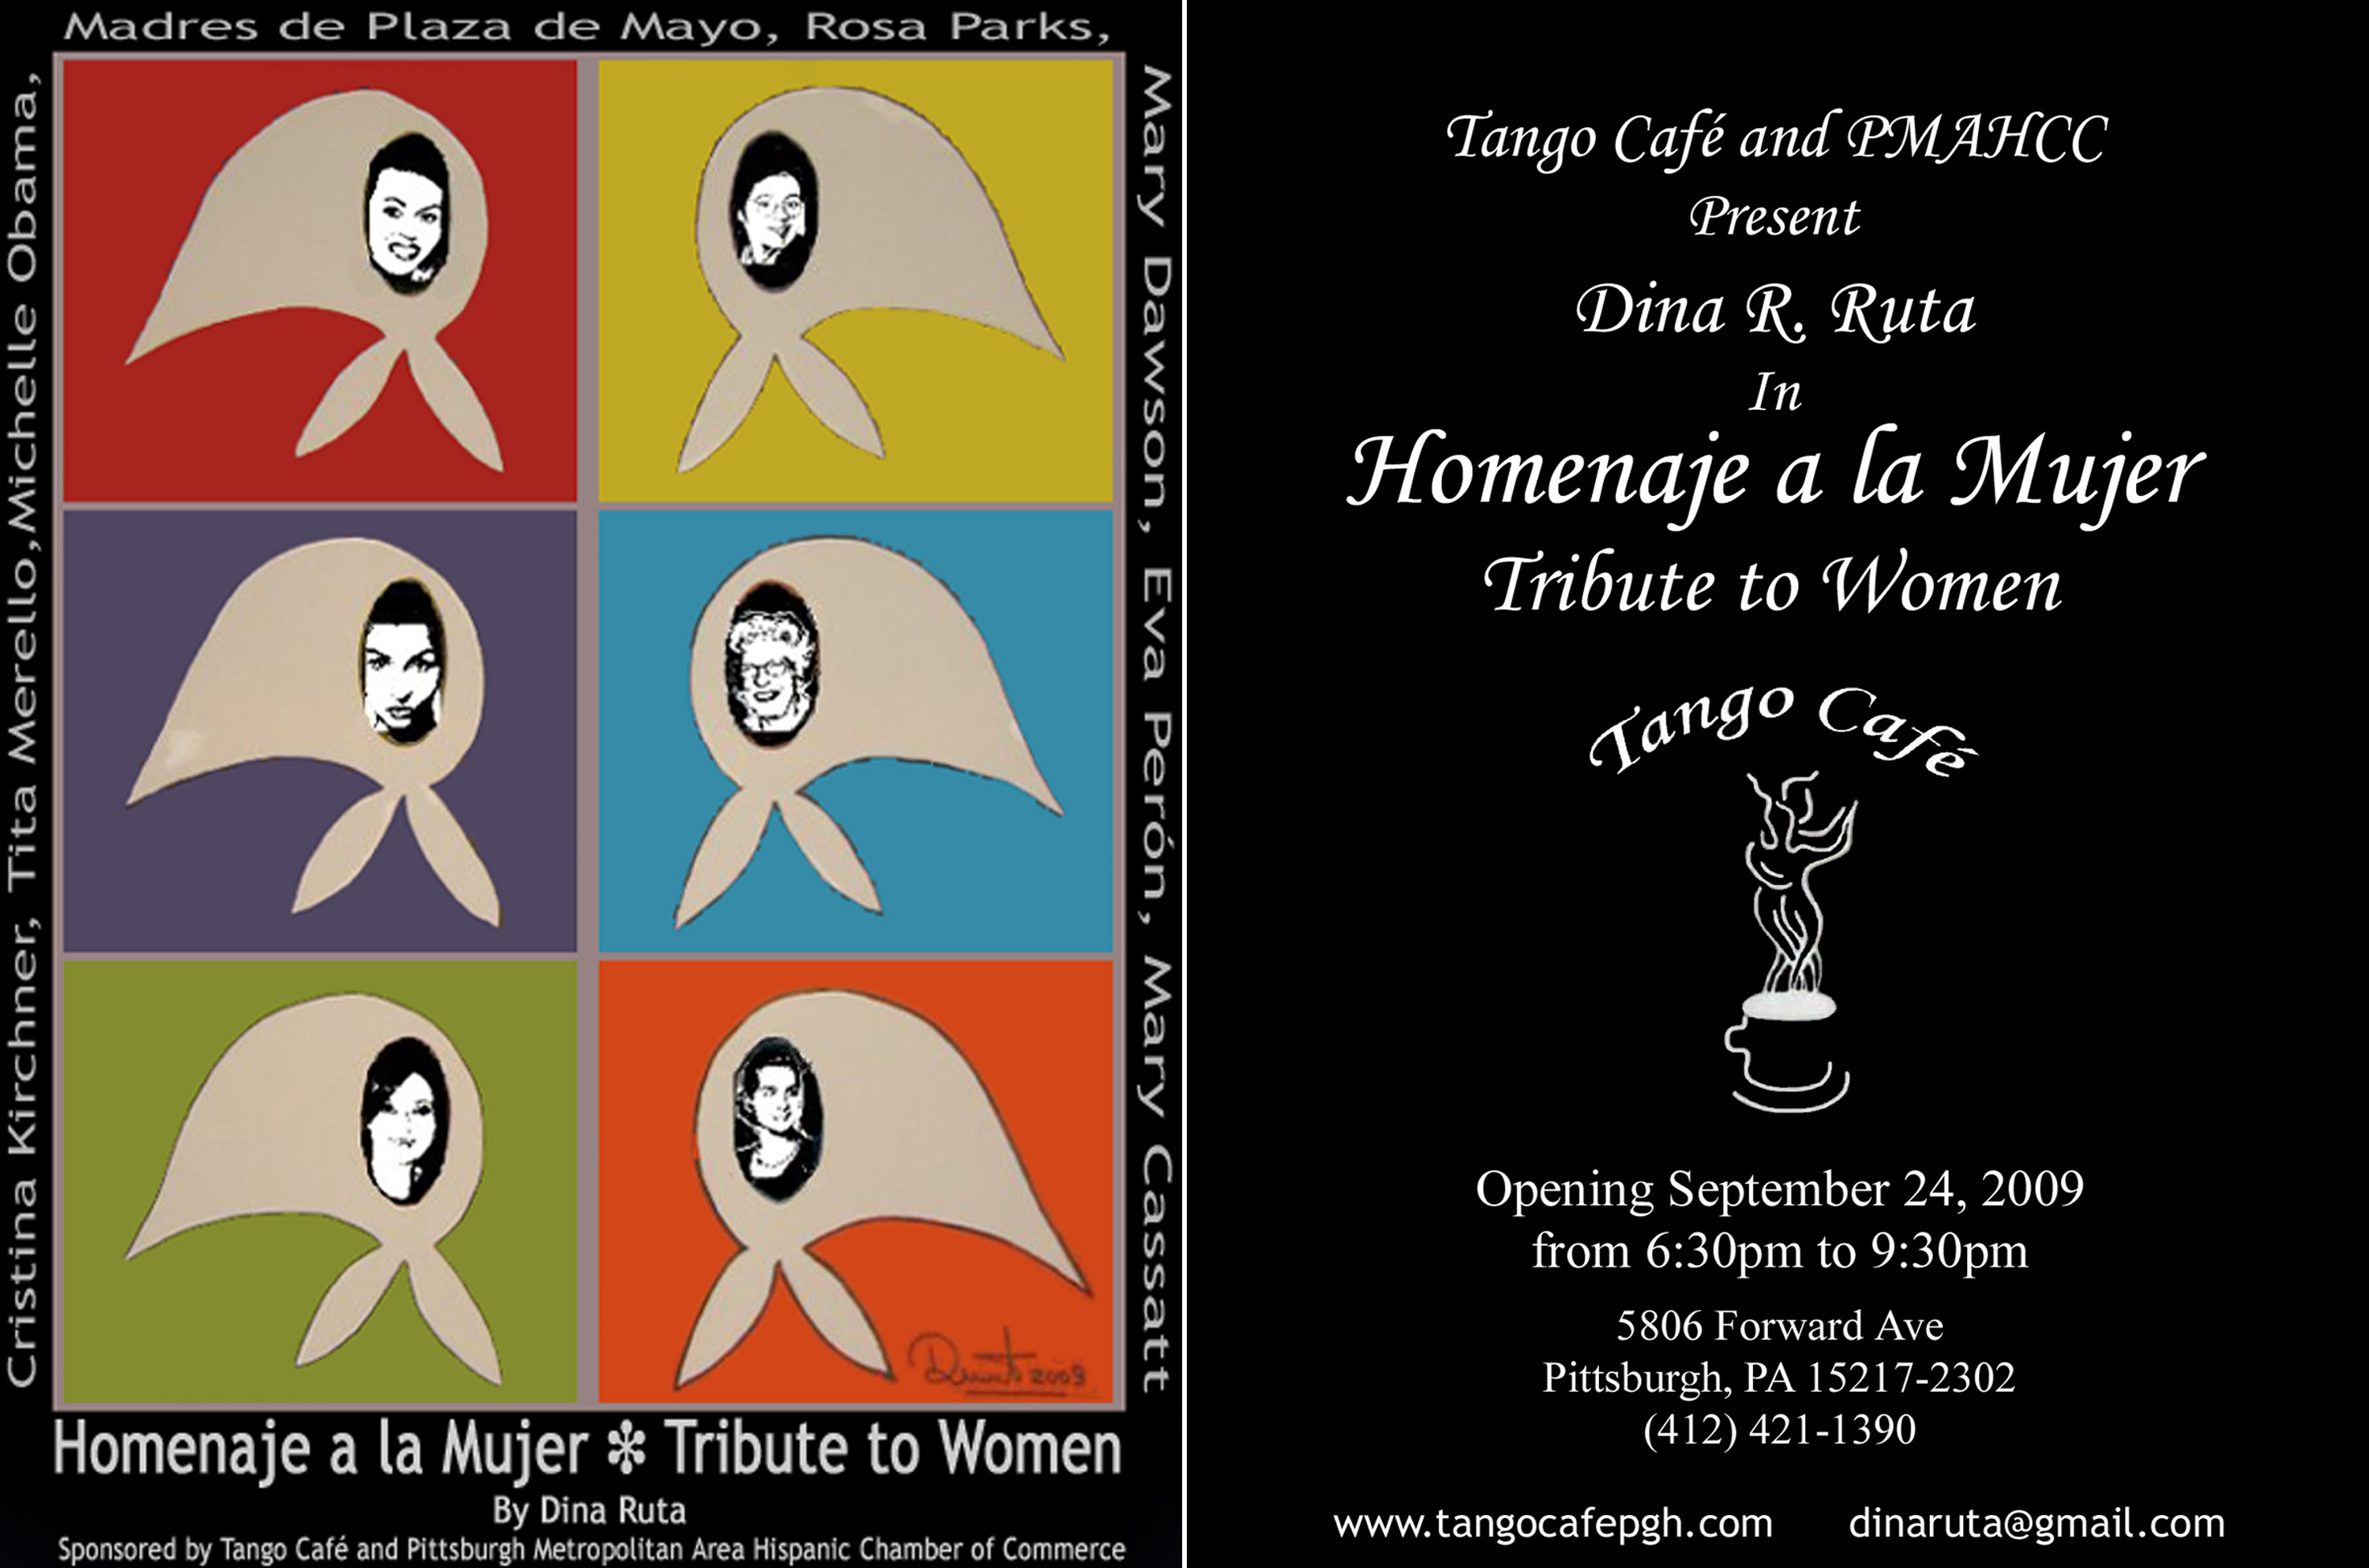 Tribute to Women, an ongoing exhibit at the Tango Café